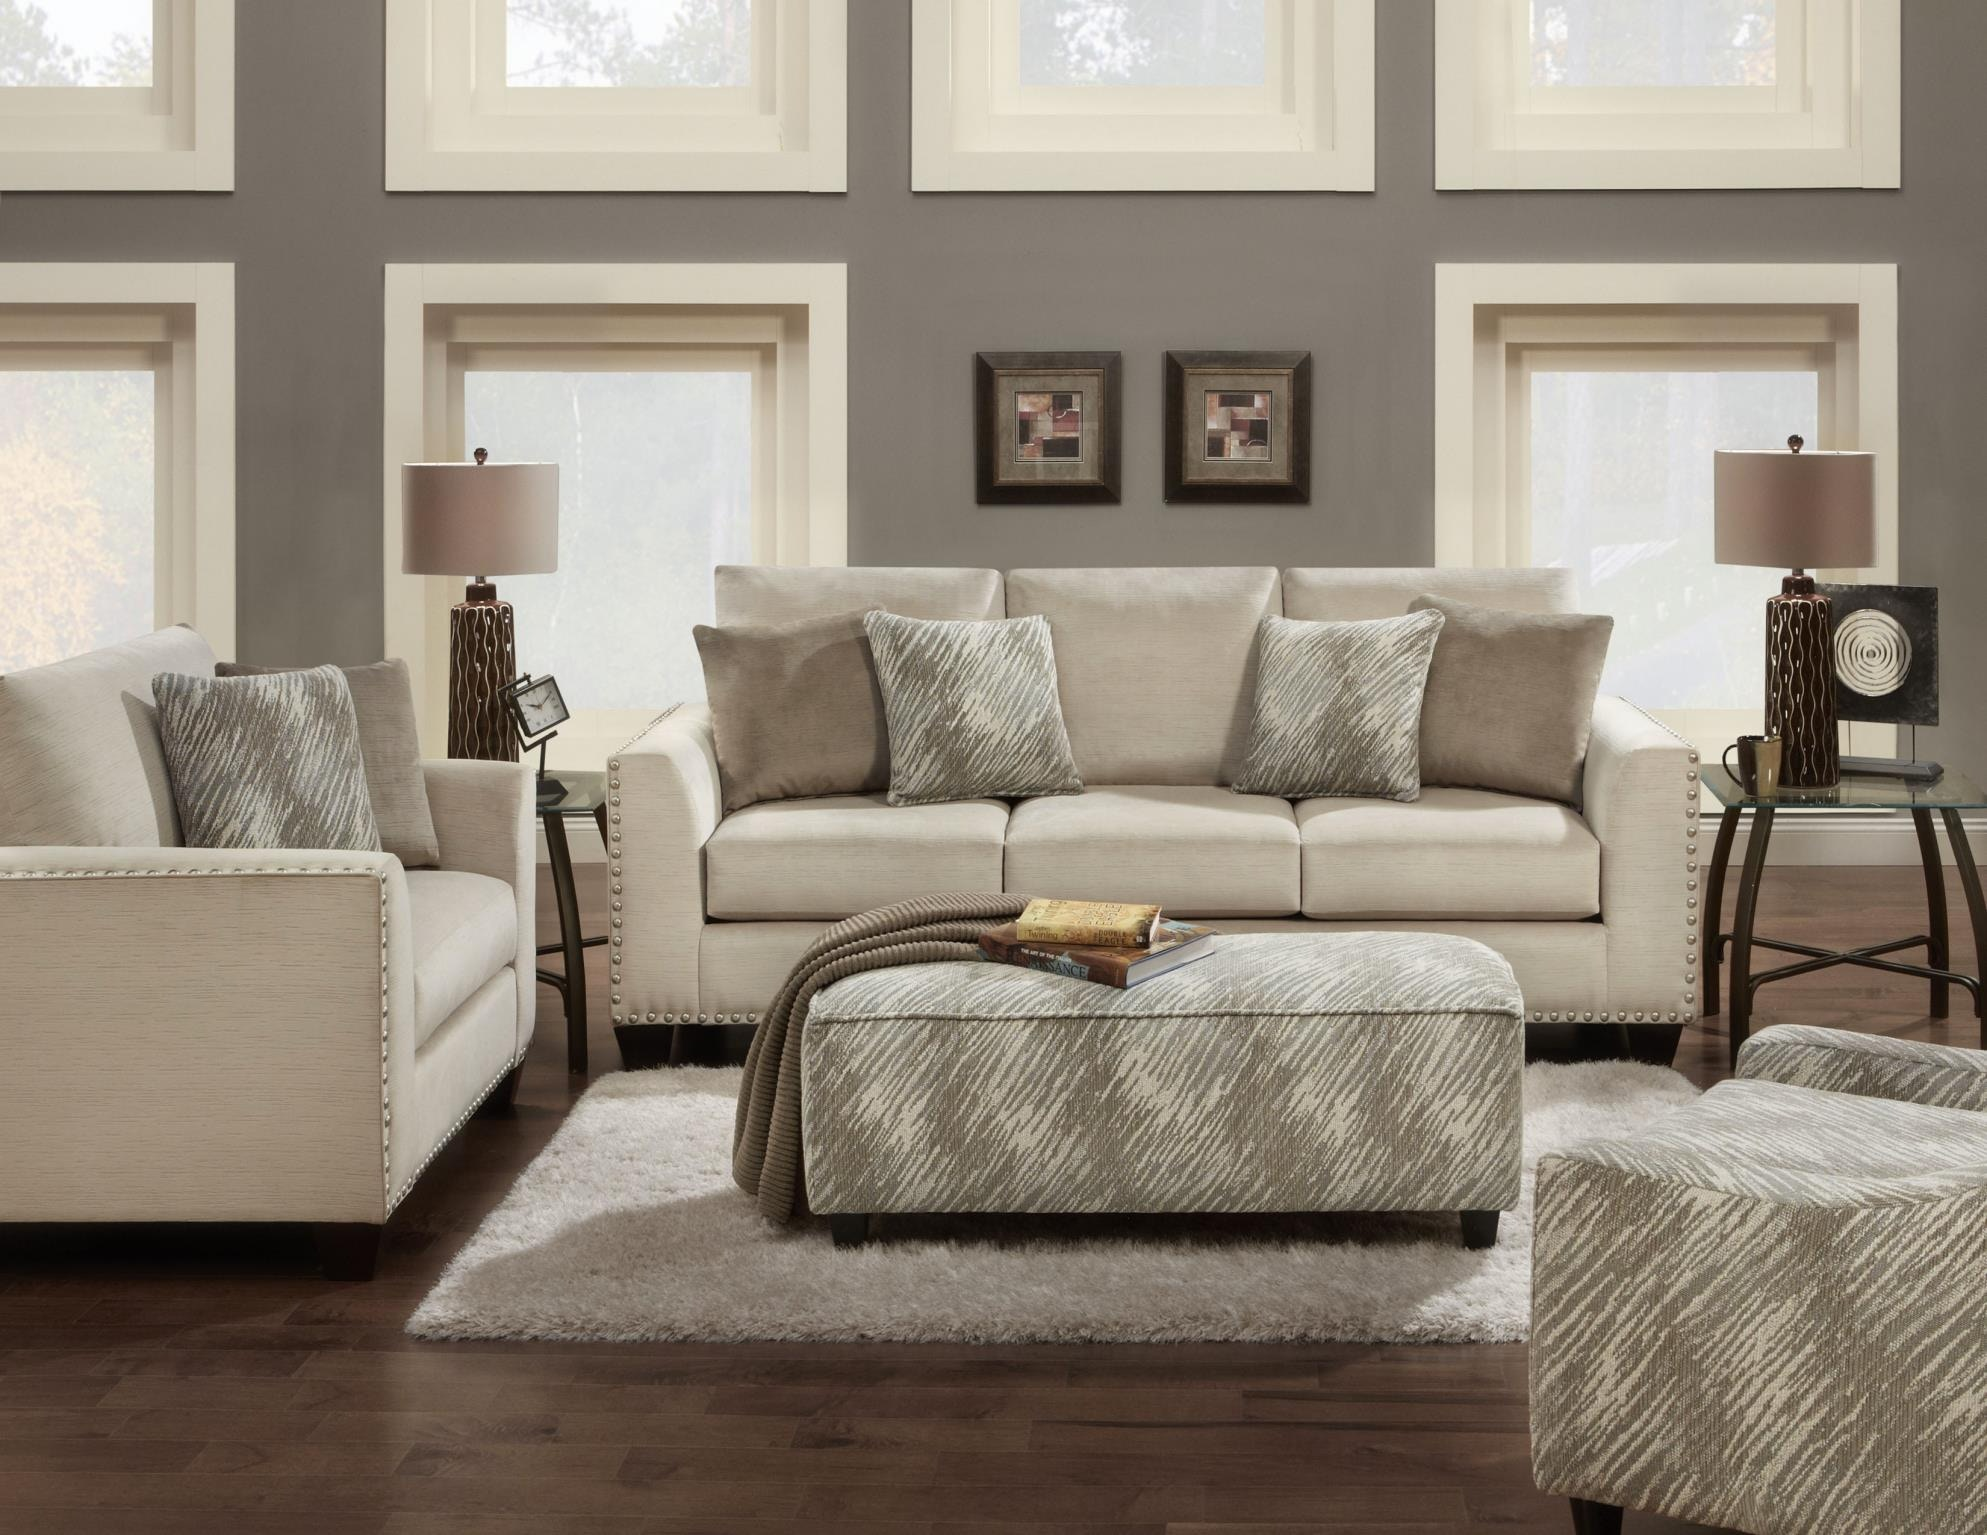 living room furniture cleveland articles with craigslist cleveland living room furniture 13036